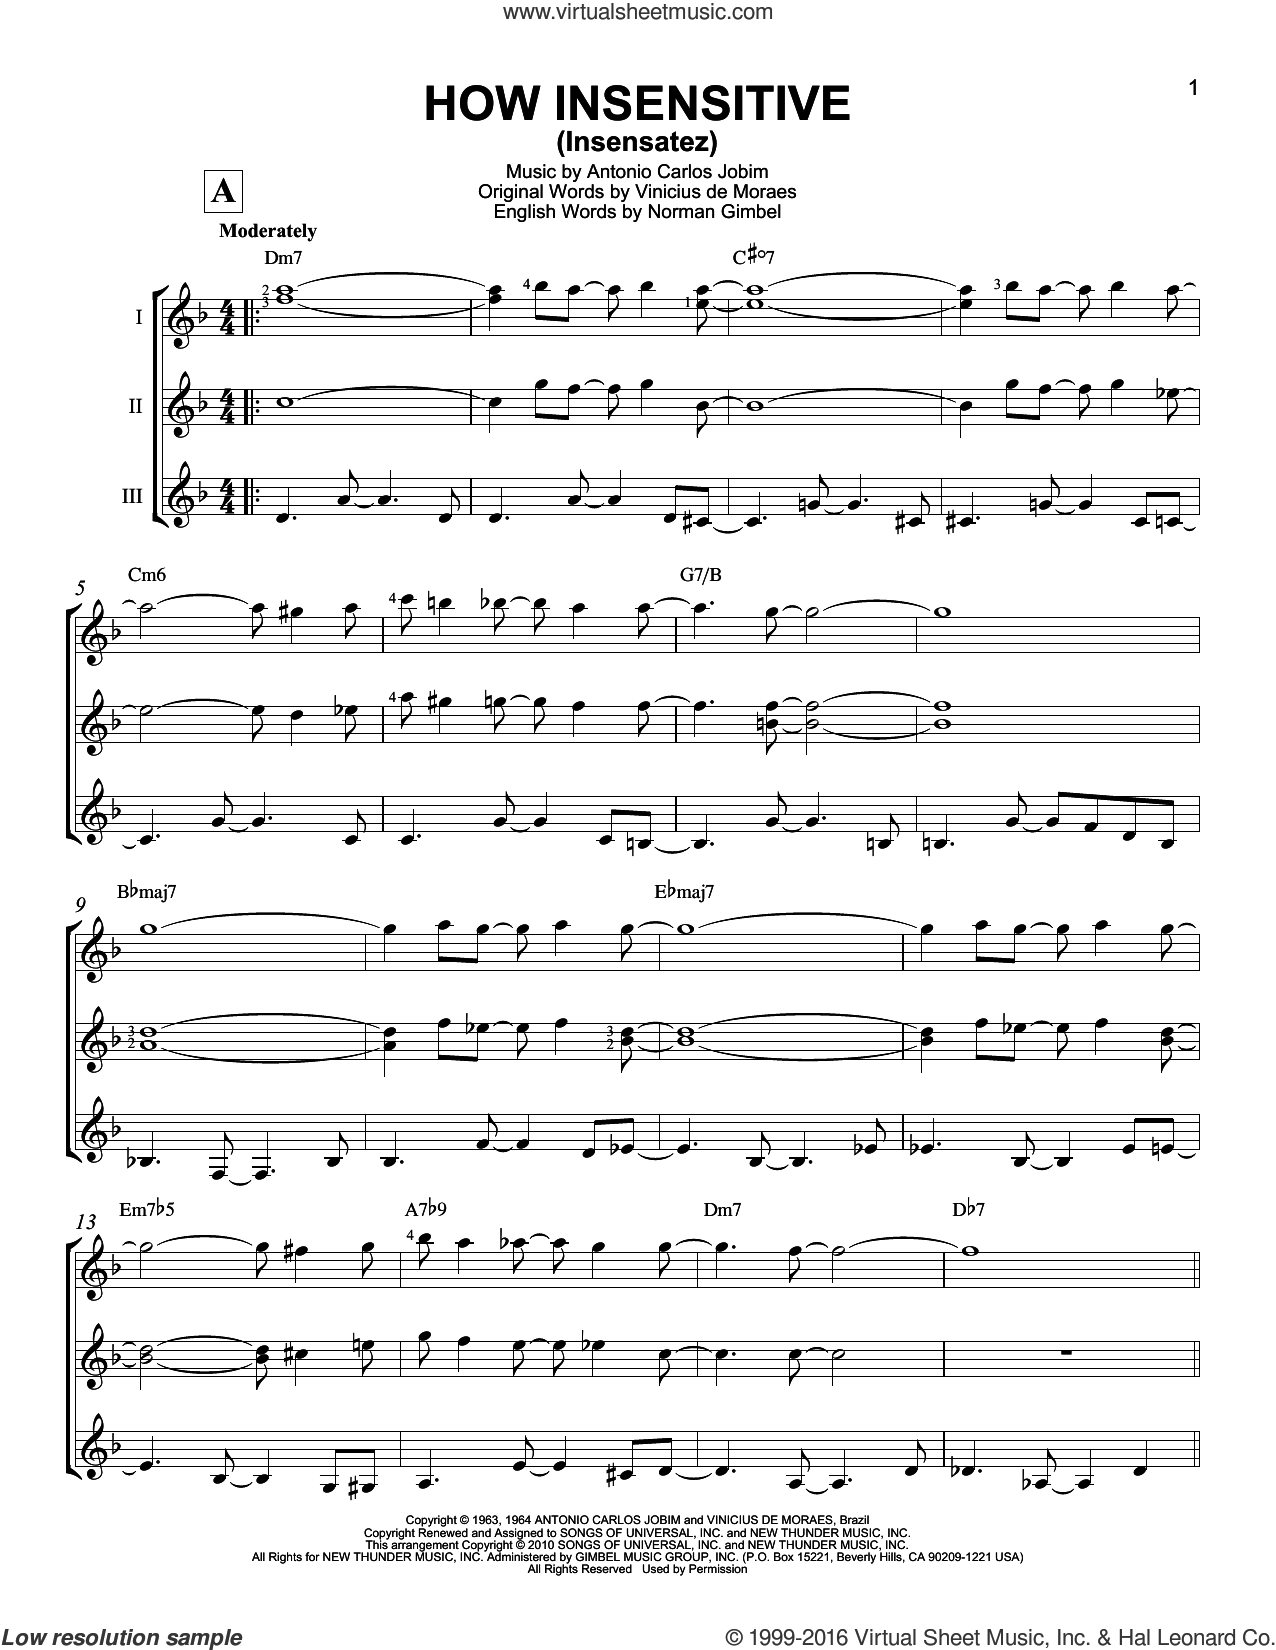 How Insensitive (Insensatez) sheet music for guitar ensemble by Vinicius de Moraes, Antonio Carlos Jobim and Norman Gimbel. Score Image Preview.